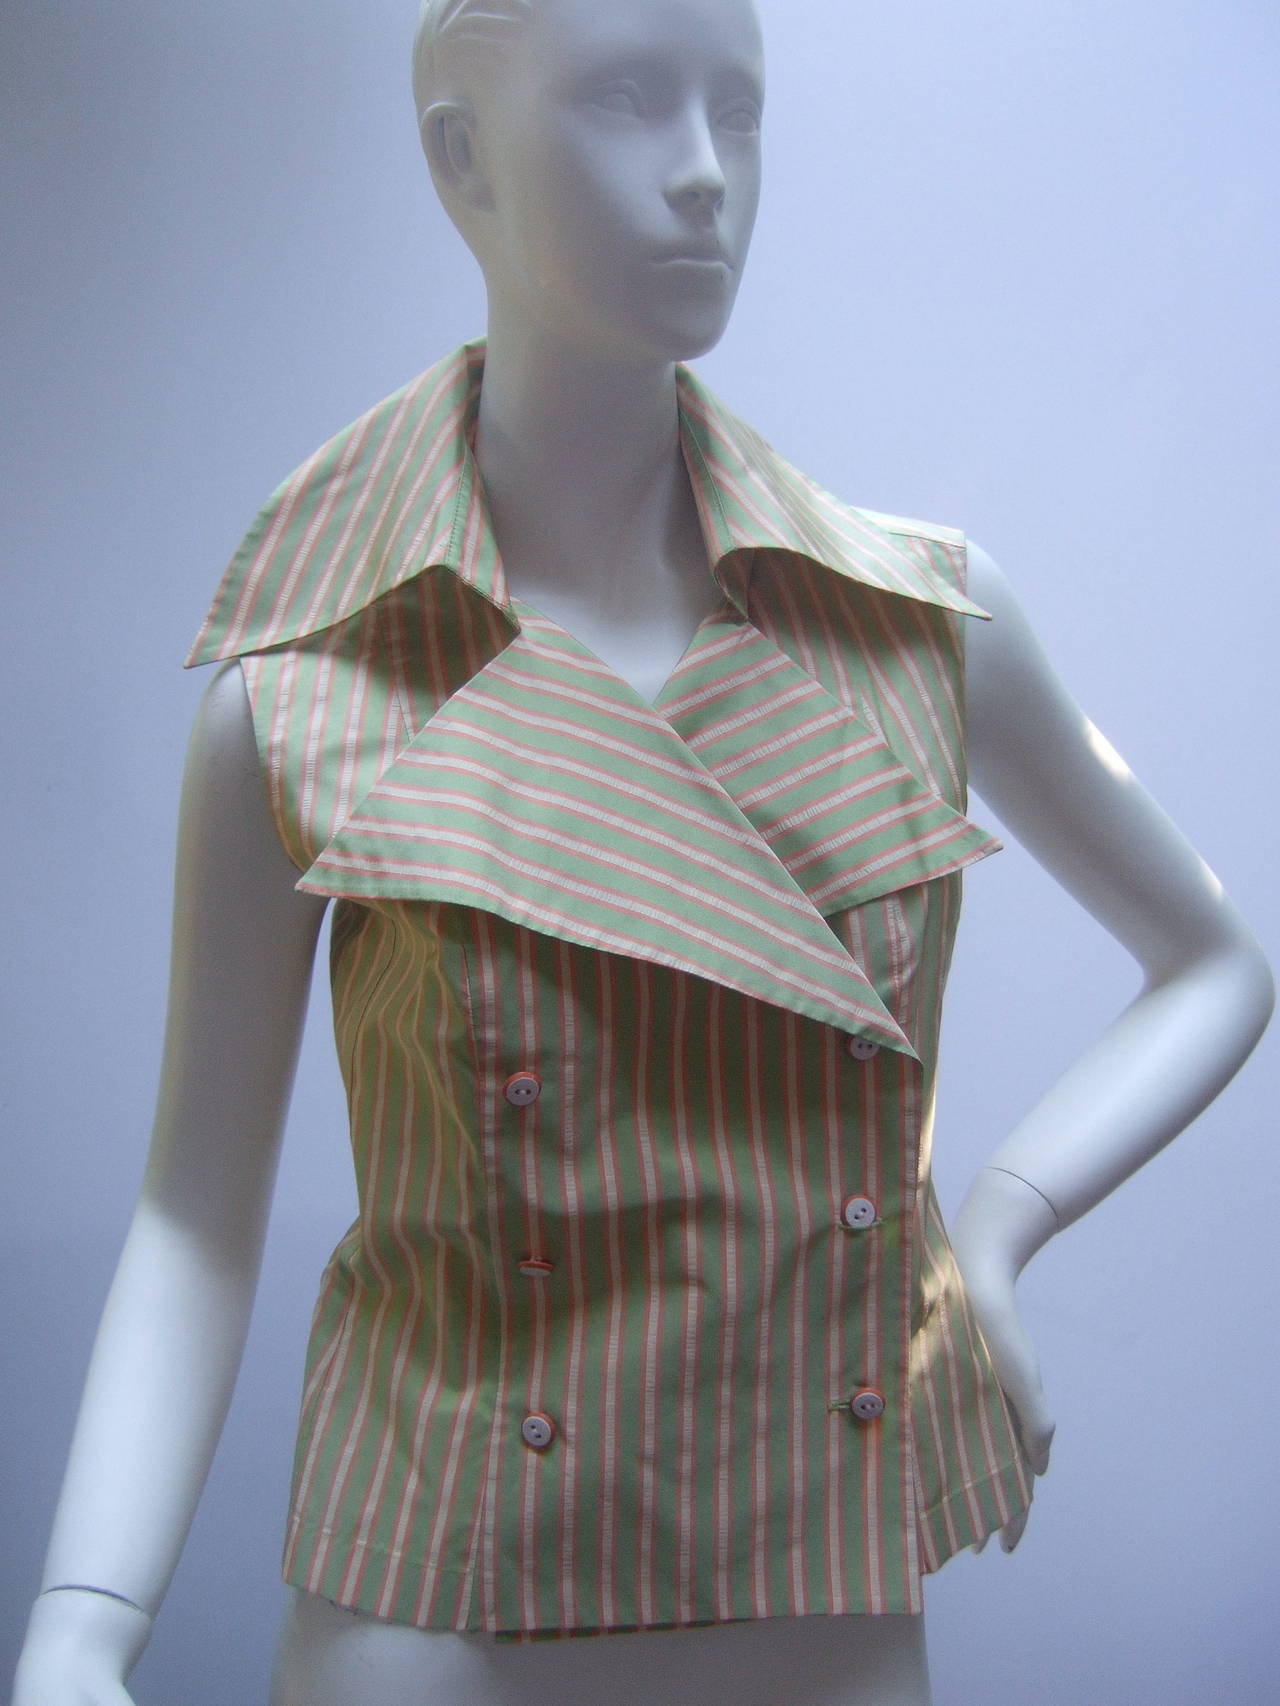 Chanel Striped silk blouse with Chanel buttons Size 38 The unique design is double breasted with six Chanel Paris stamped resin buttons. The crisp double sided silk blouse is a combination of pastachio green, salmon pink & cream stripes. The